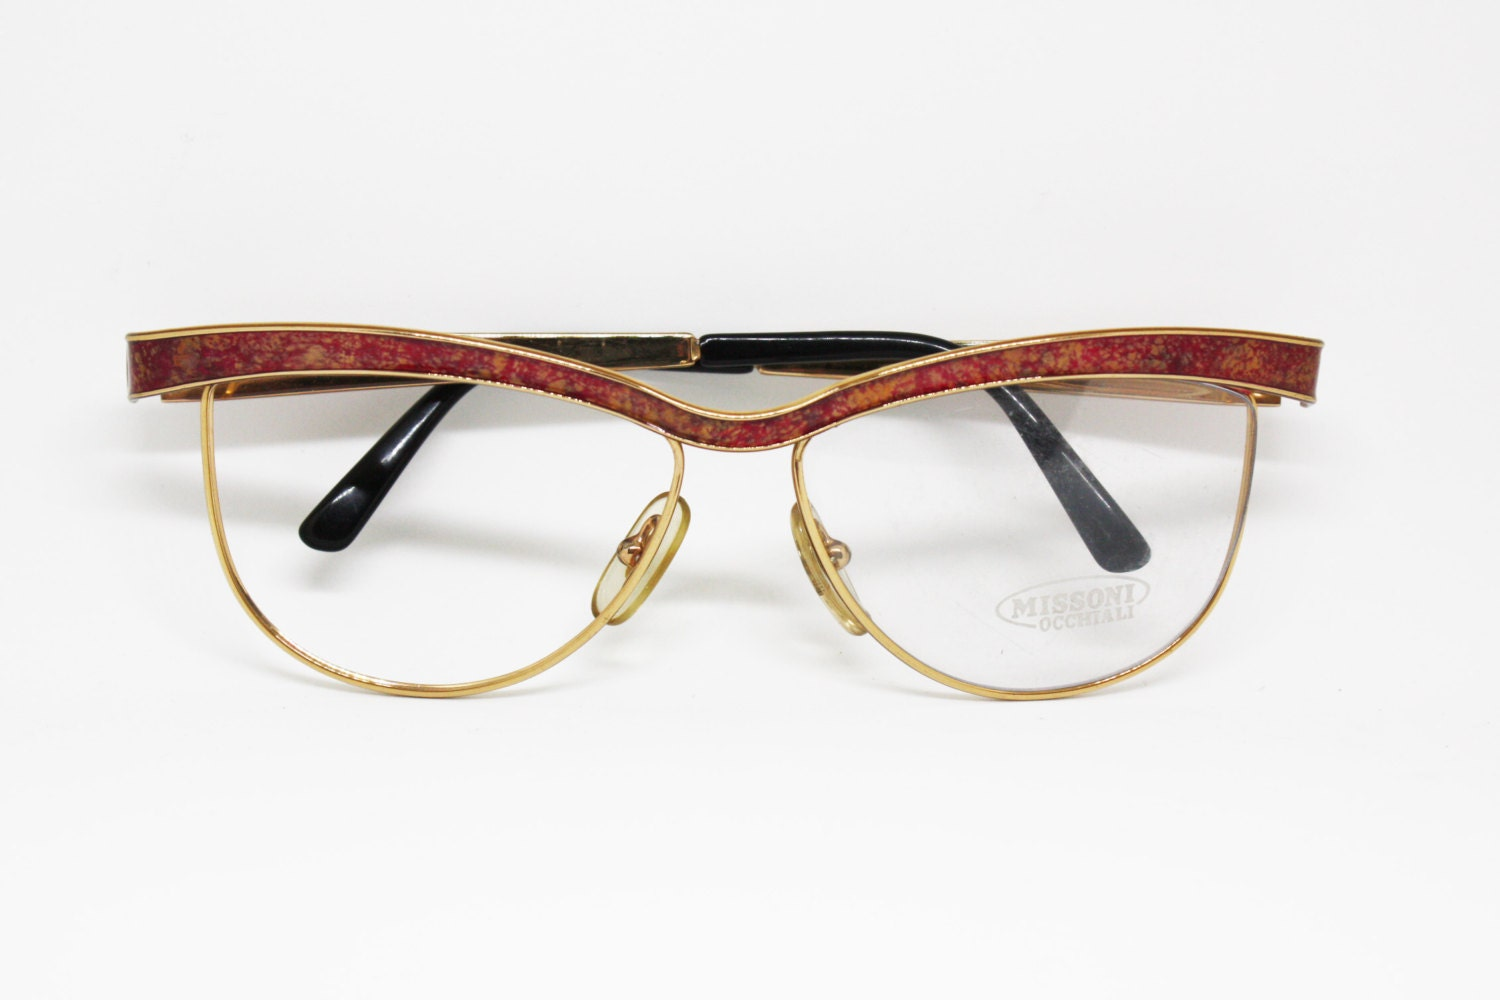 7d2b1c75e1a MISSONI M 300 half lunettes eyewear ladies woman glasses golden metal frame  detailled aged red effect